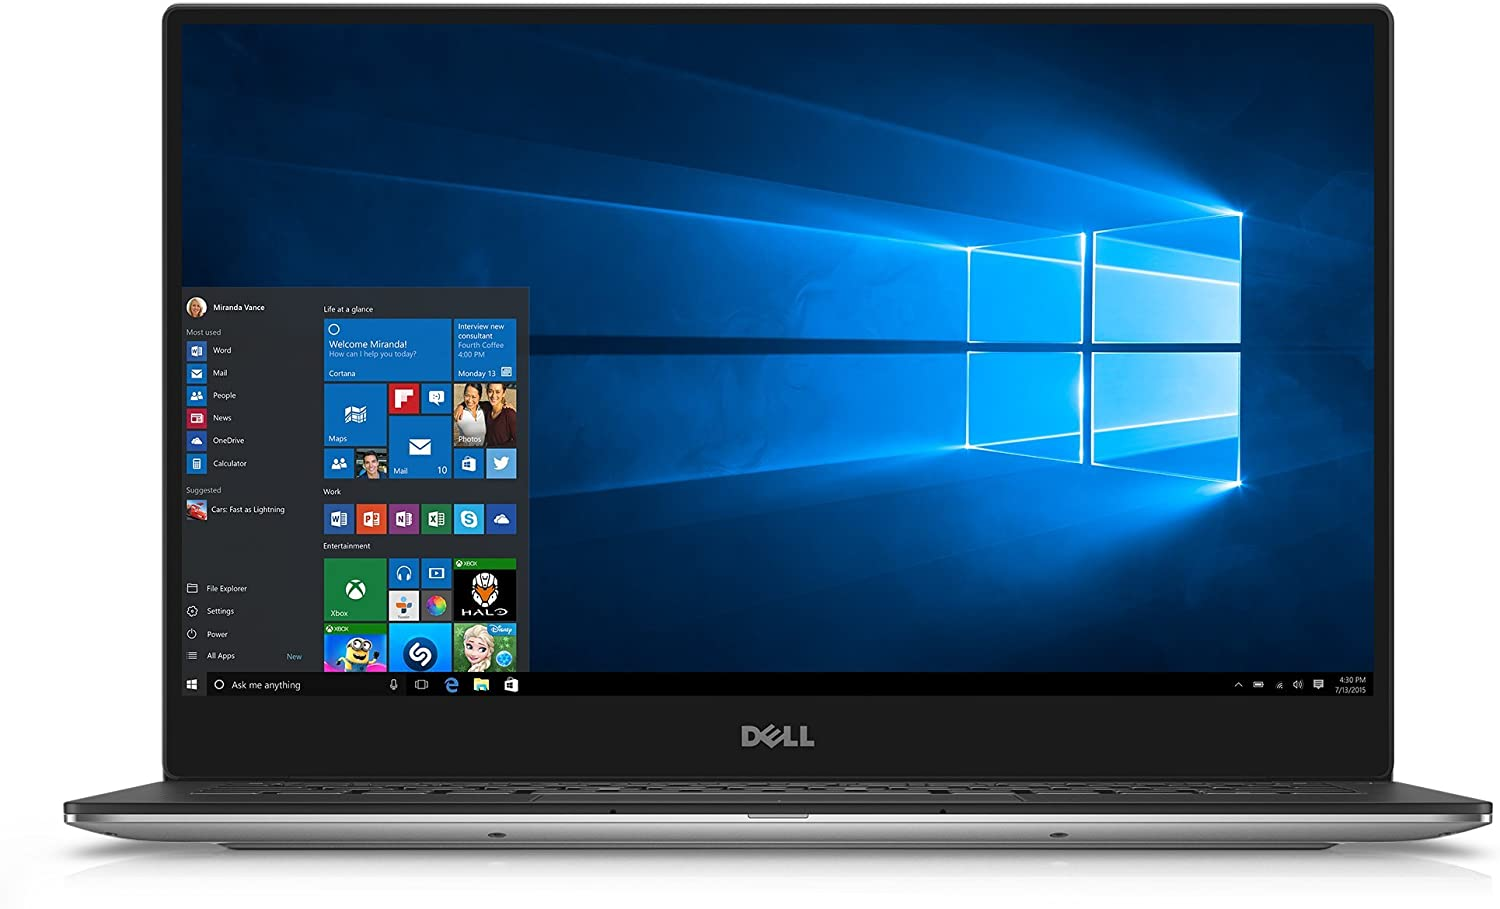 Dell XPS XPS9350-5341SLV 13.3 Inch QHD Touchscreen Laptop (Intel Core i7 with Iris Graphics, 8 GB RAM, 256 GB SSD, Silver) (Certified Refurbished)